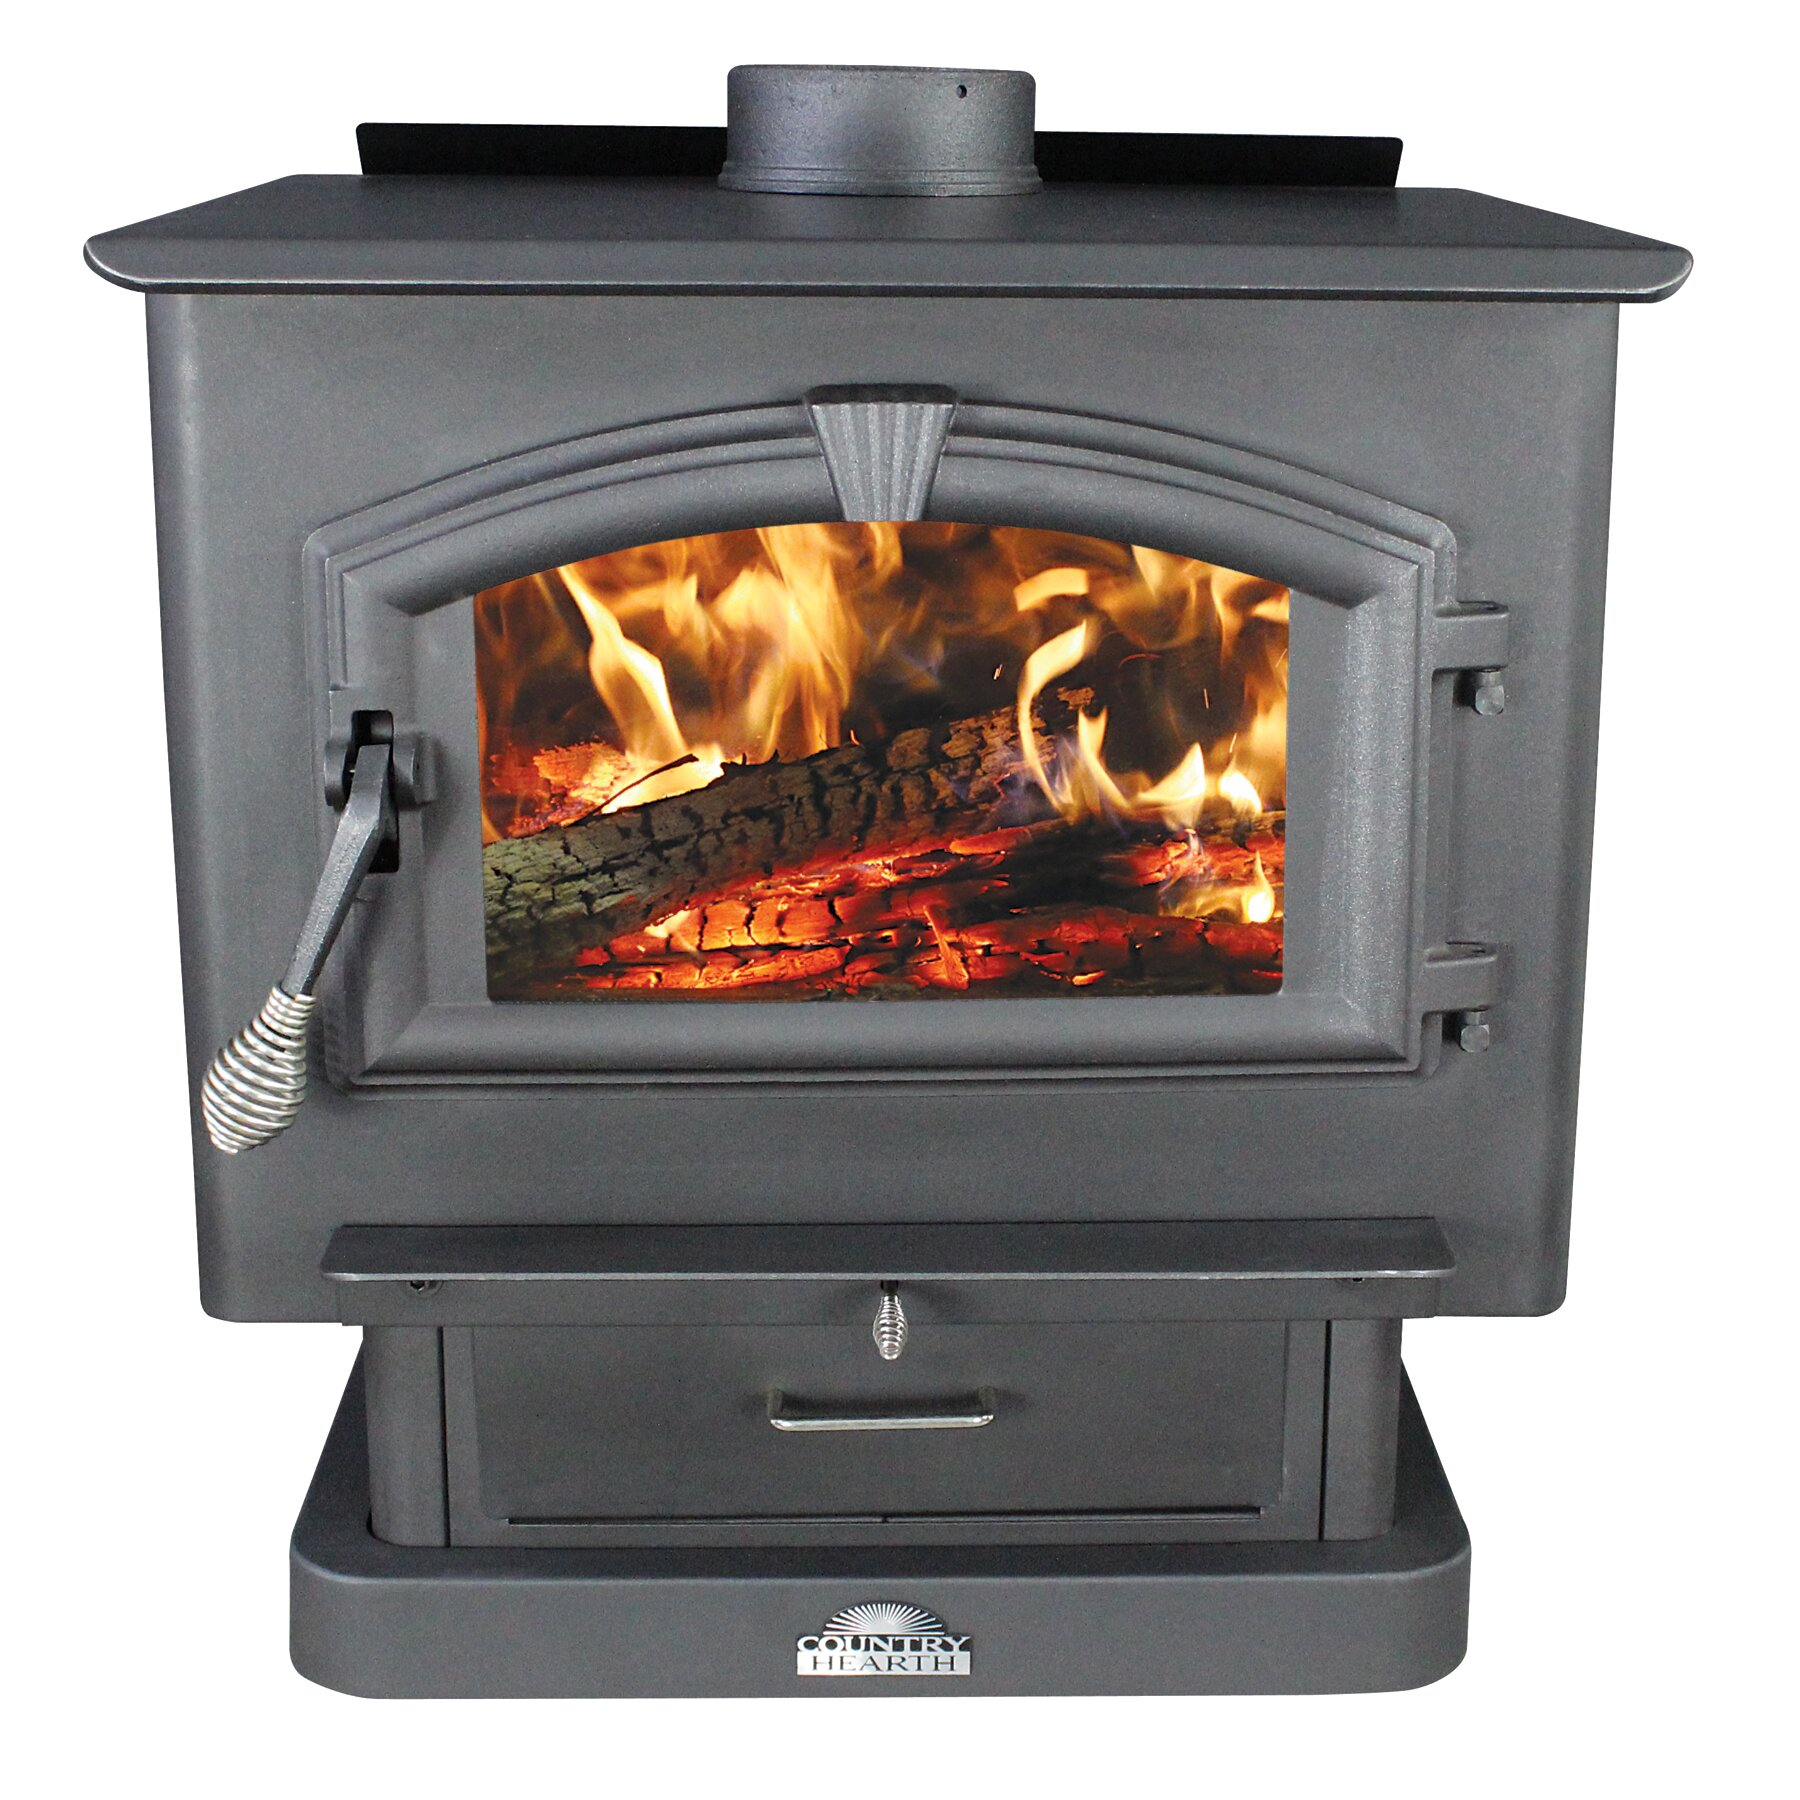 US Stove 2,000 sq. ft. Direct Vent Wood Stove & Reviews | Wayfair